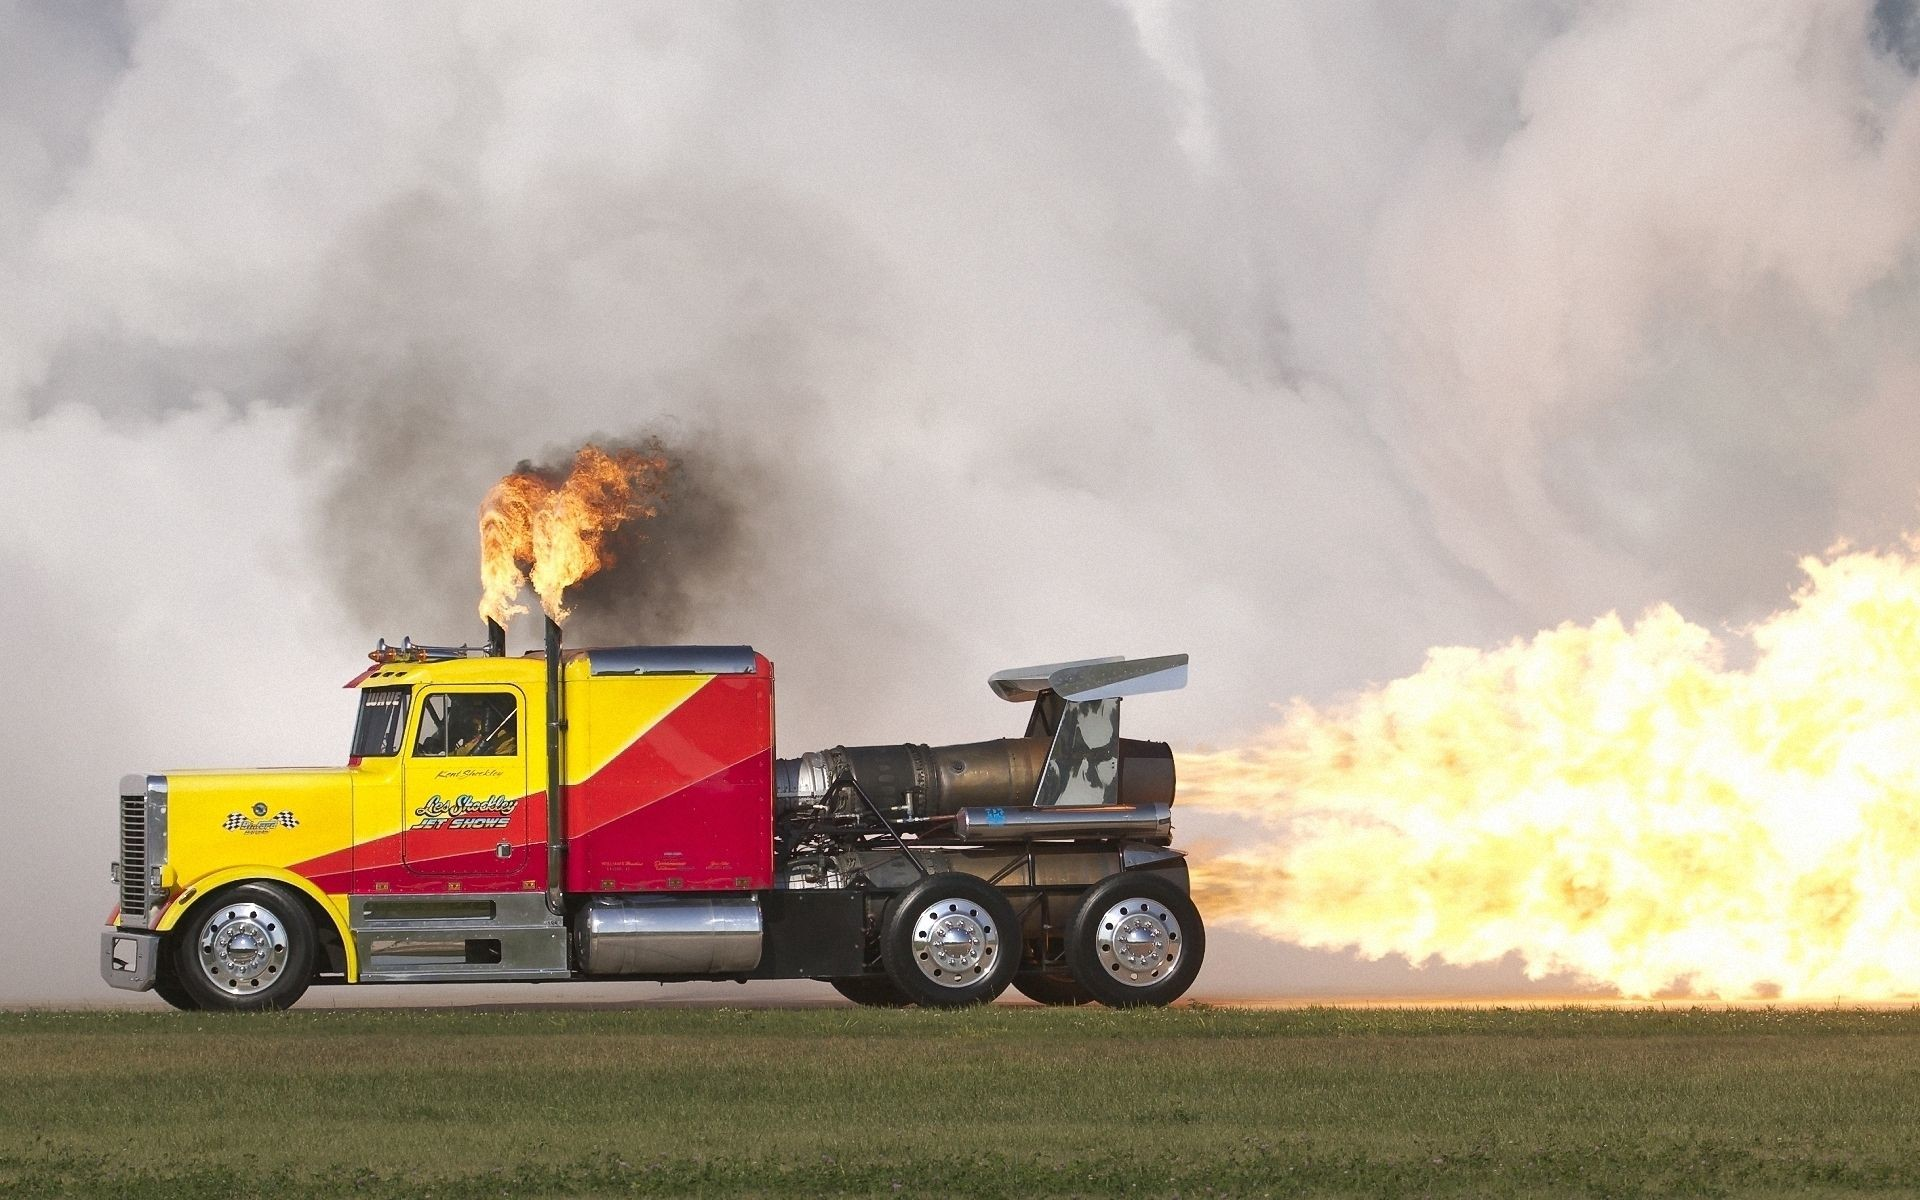 Res: 1920x1200, drag racing wallpaper | Vehicles - Drag Racing - Truck - Jet - Fire - Flame